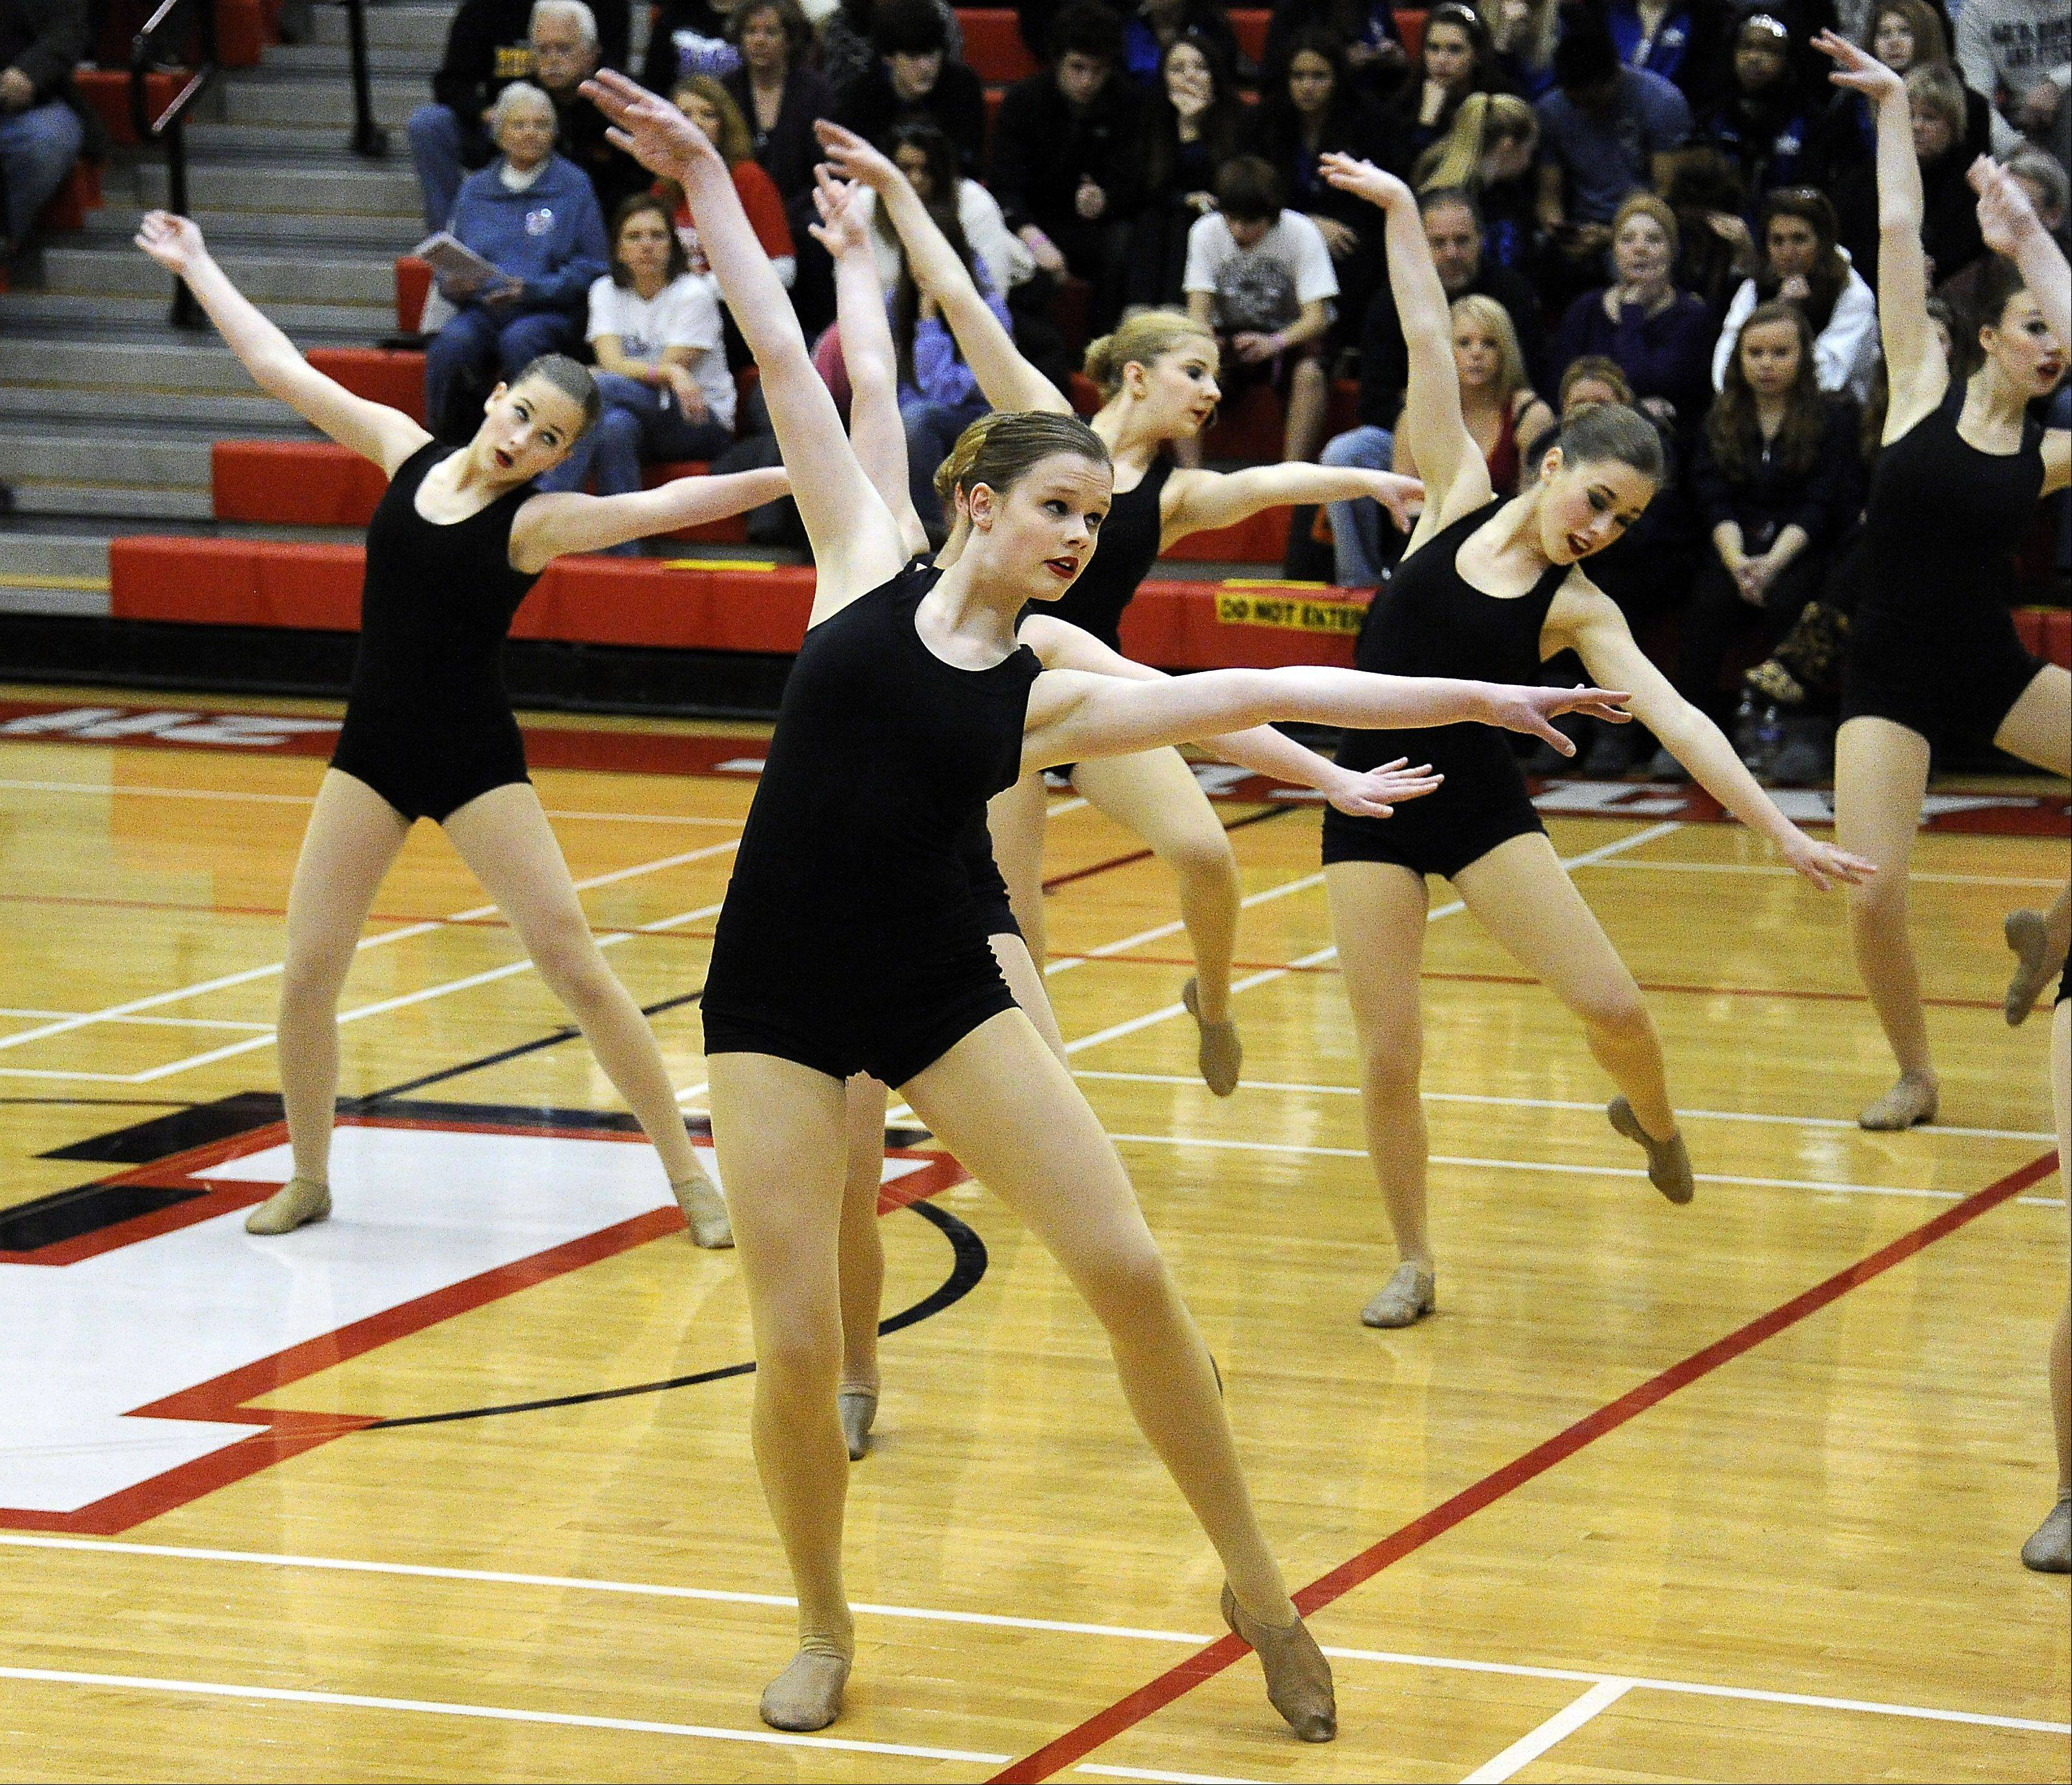 Dancing in the (2A) division are members of St. Viator High School dance squad in front of packed house with Margaret Aichele leading the way in the 1st annual Sectional Competition at Palatine High School on Saturday.